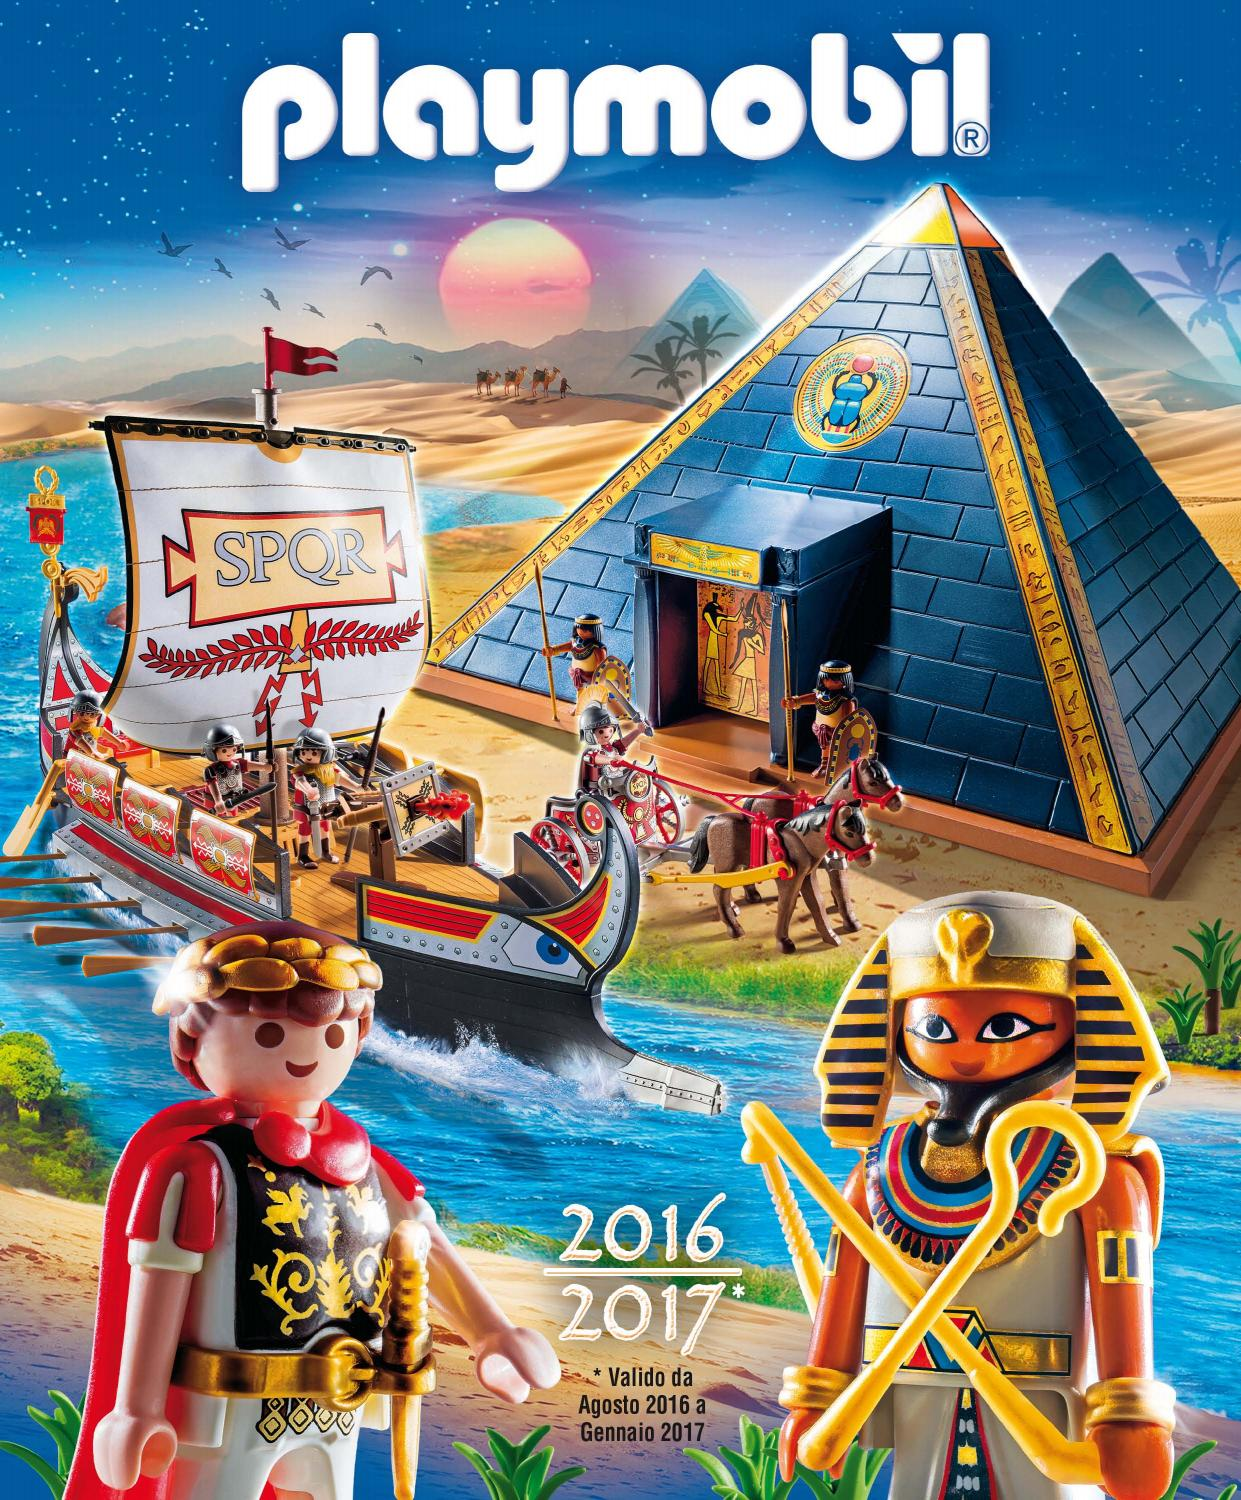 playmobil katalog it 2016 2017 150dpipdf by pfiff toys issuu. Black Bedroom Furniture Sets. Home Design Ideas